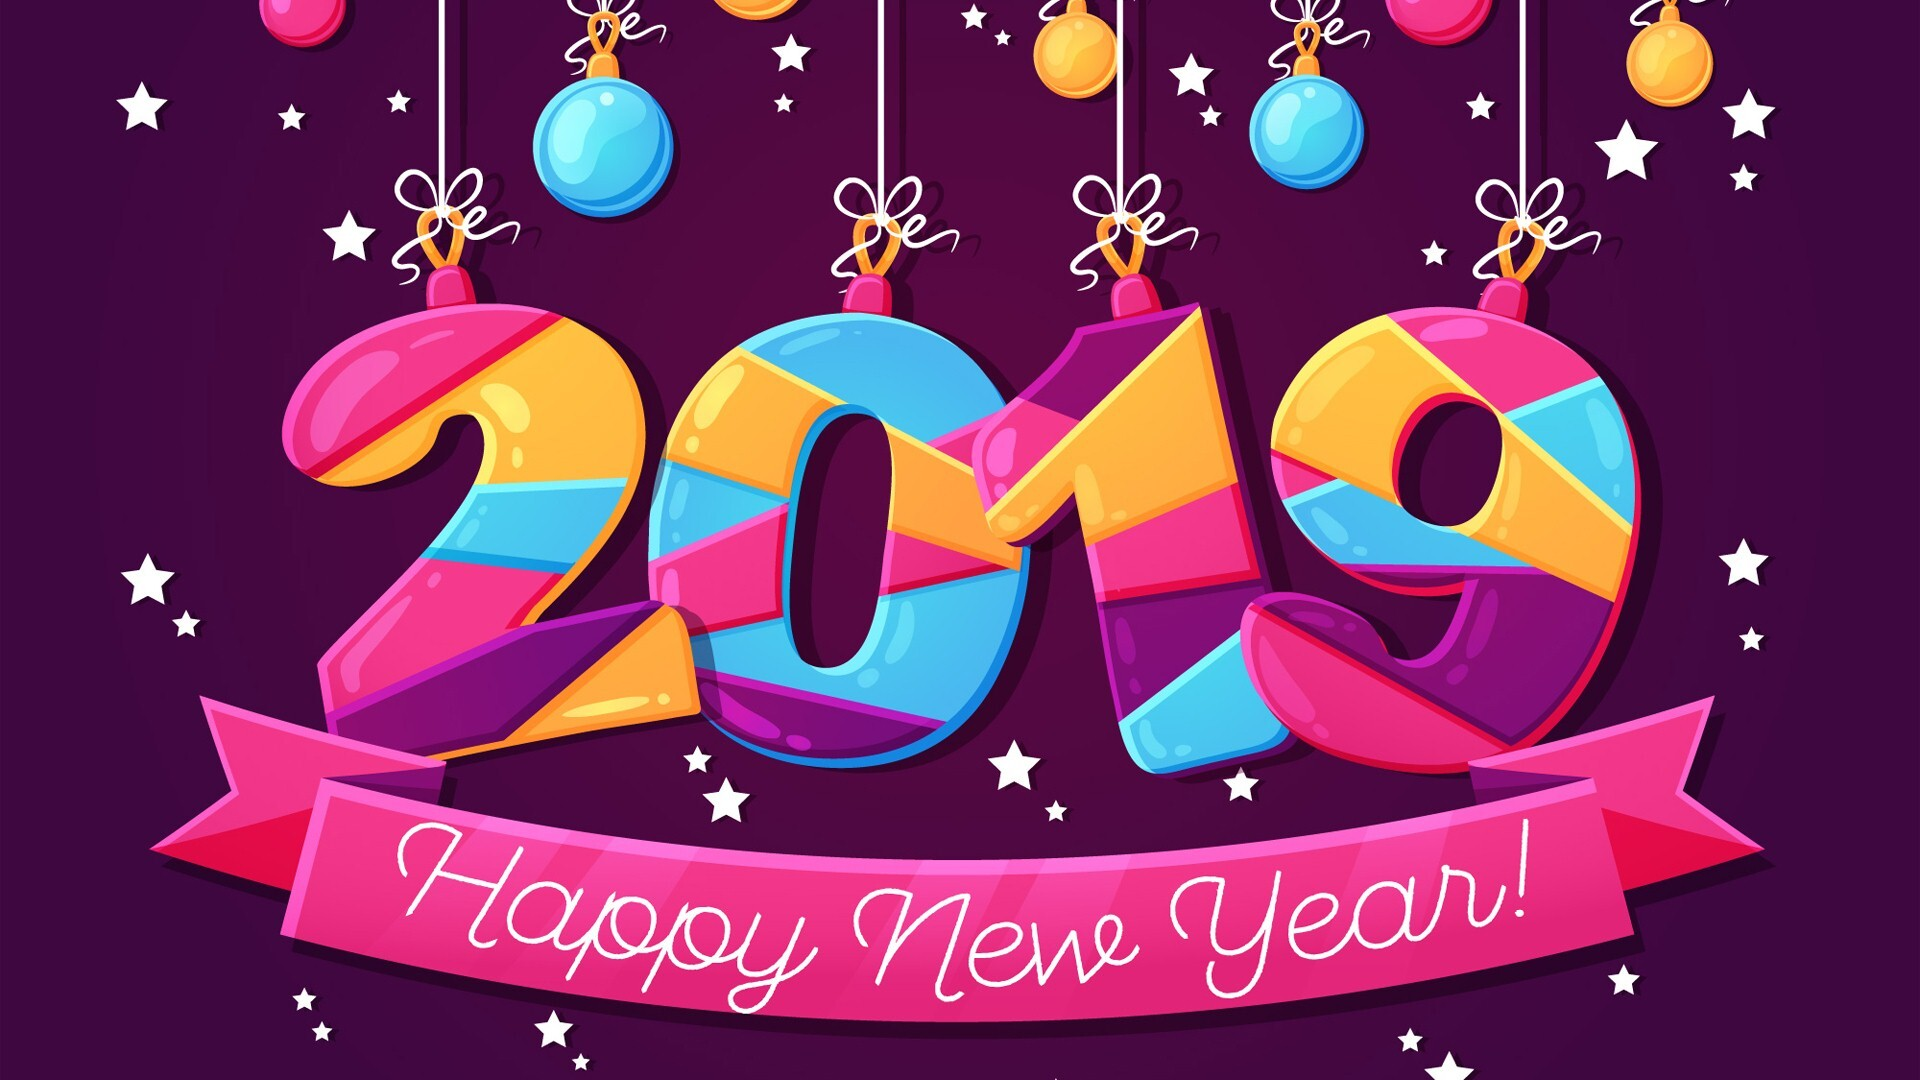 2019 Happy New Year Hd Pink Image Hd Wallpapers